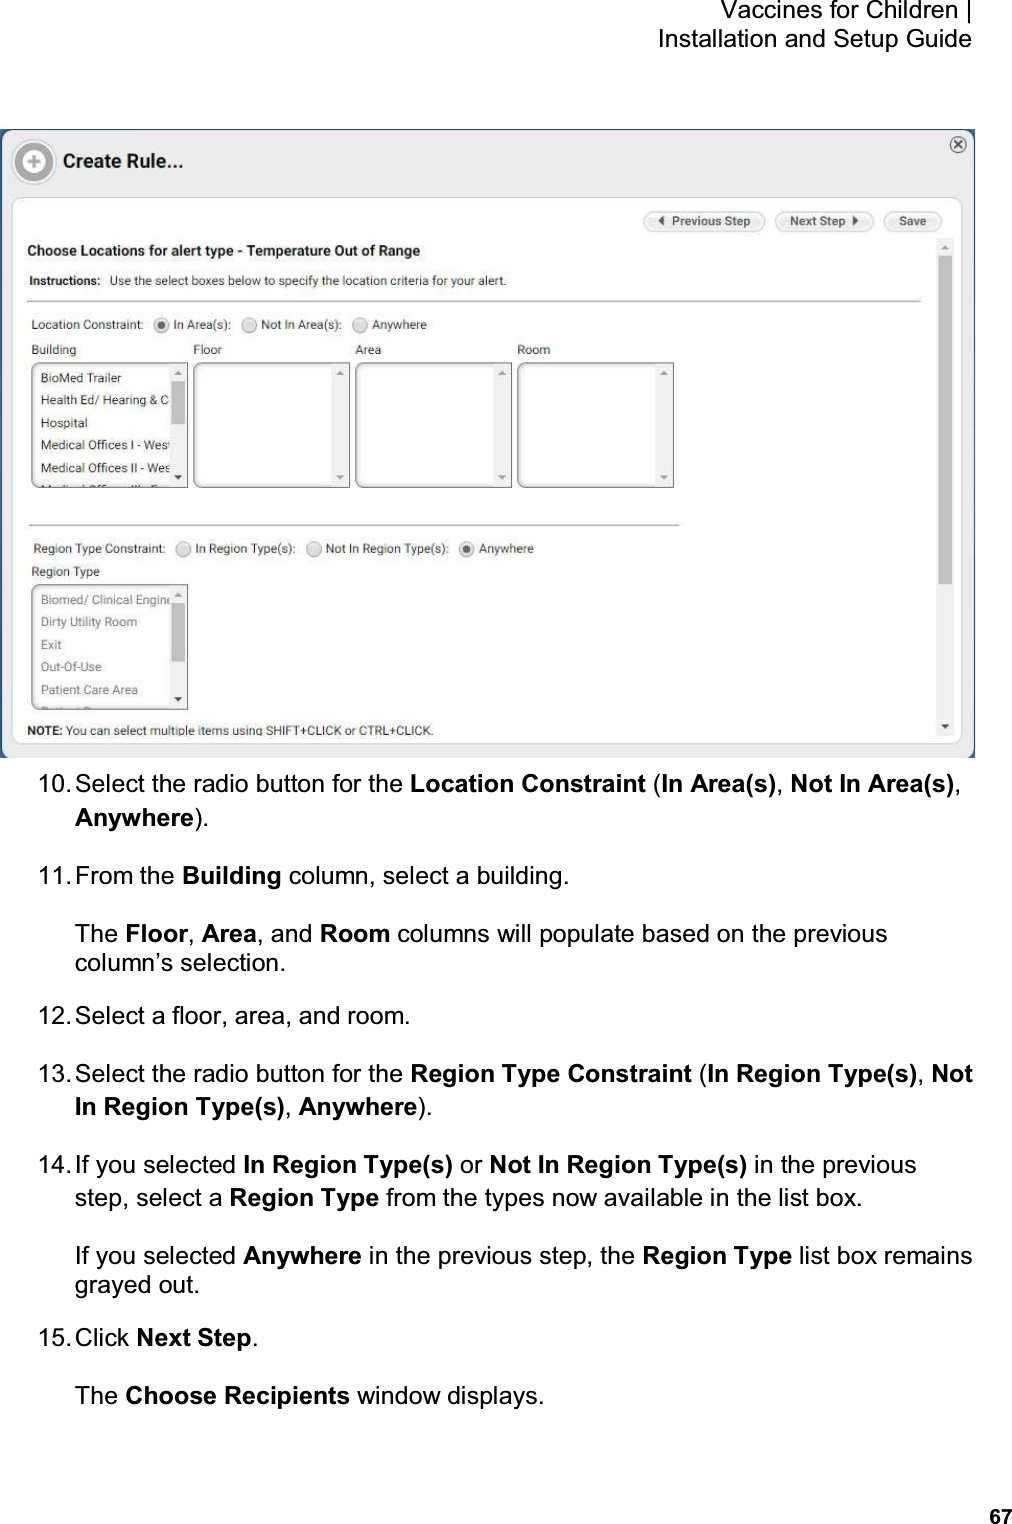 67 Vaccines for Children    Installation and Setup Guide  10. Select the radio button for the Location Constraint (In Area(s), Not In Area(s), Anywhere). 11. From the Building column, select a building. The Floor, Area, and Room columns will populate based on the previous column's selection. 12. Select a floor, area, and room. 13. Select the radio button for the Region Type Constraint (In Region Type(s), Not In Region Type(s), Anywhere). 14. If you selected In Region Type(s) or Not In Region Type(s) in the previous step, select a Region Type from the types now available in the list box. If you selected Anywhere in the previous step, the Region Type list box remains grayed out. 15. Click Next Step. The Choose Recipients window displays.